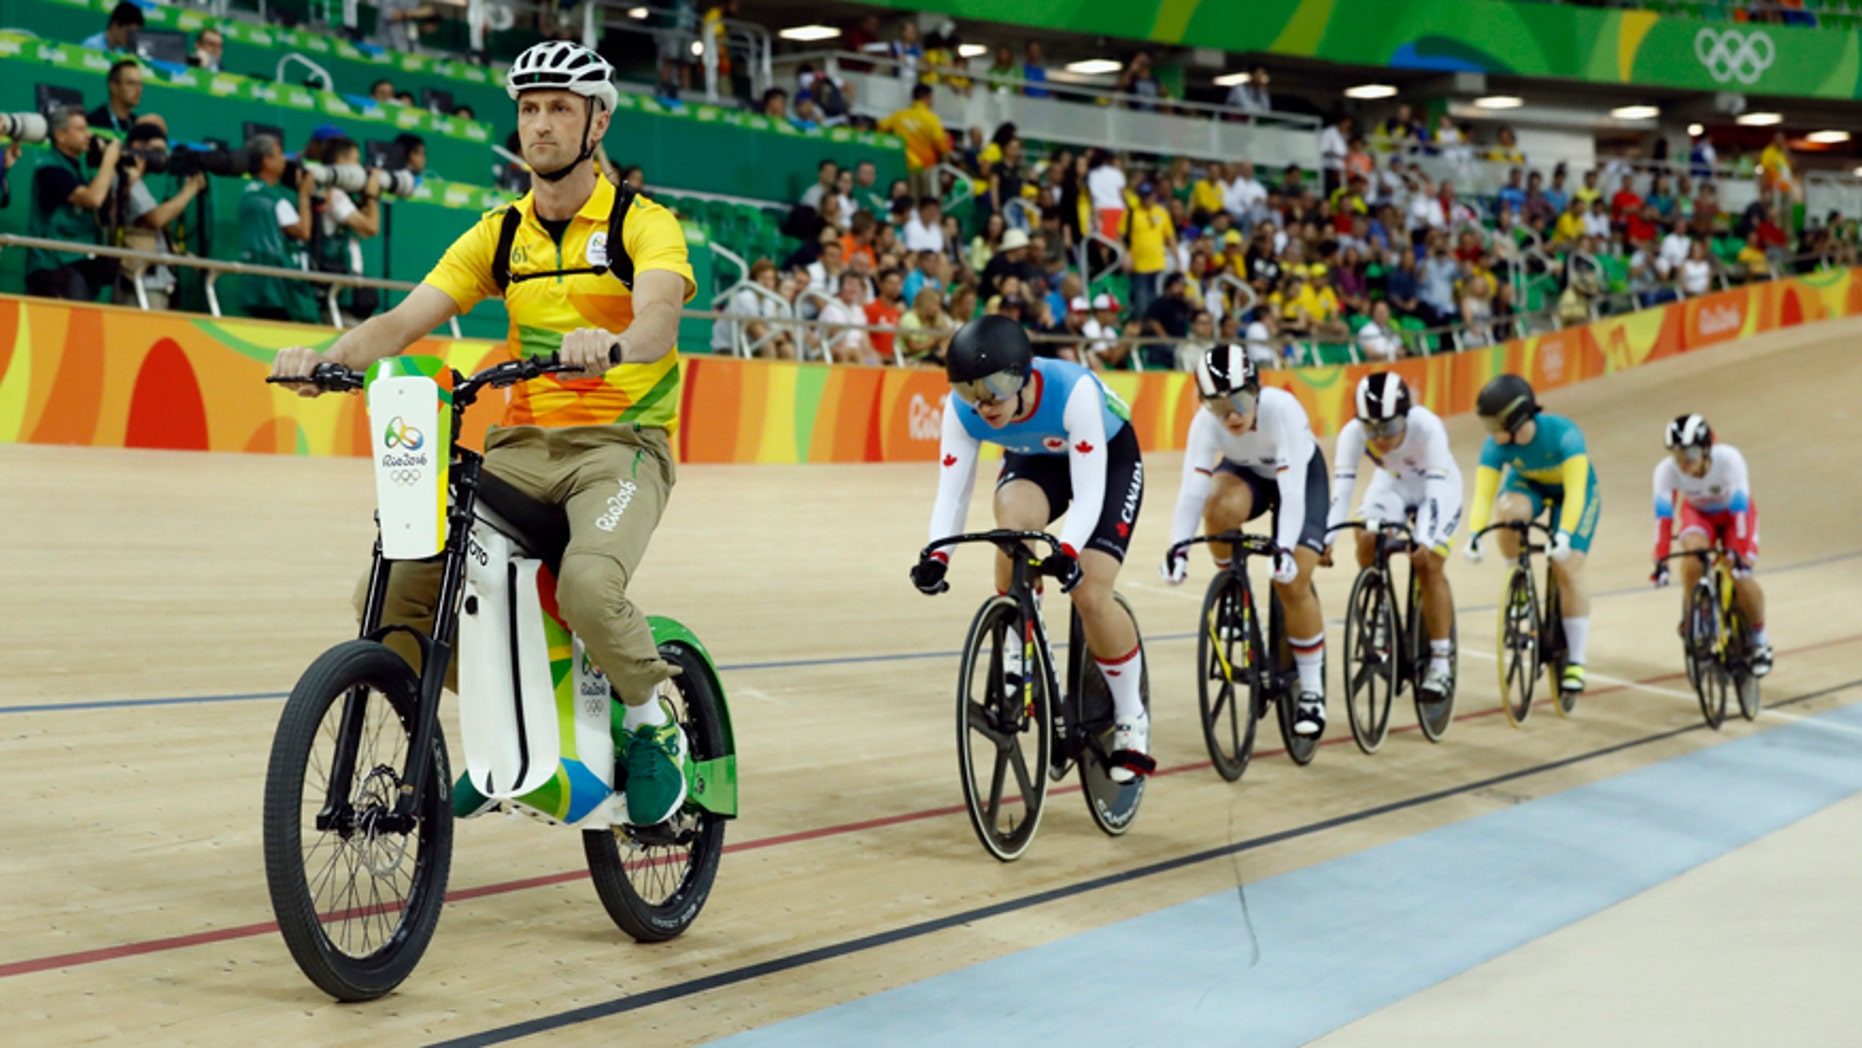 Cyclists compete in the Women's Keirin first round at the Rio Olympic Velodrome during the 2016 Summer Olympics in Rio de Janeiro, Brazil, Saturday, Aug. 13, 2016. (AP Photo/Patrick Semansky)